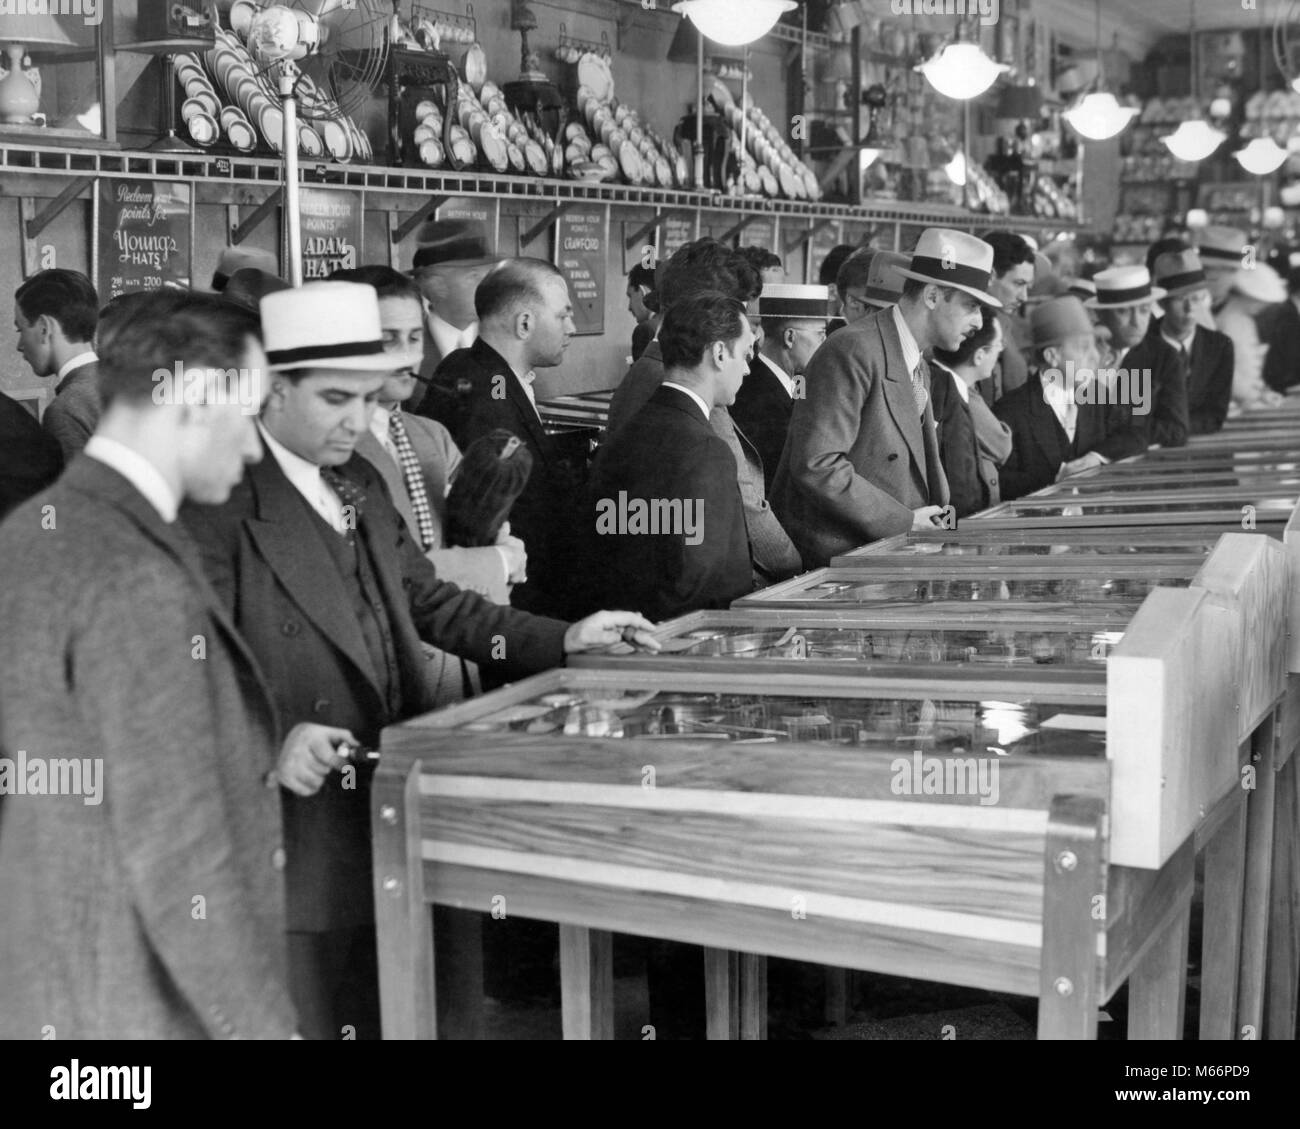 1930s GROUP MEN WEARING HATS PLAYING MARBLE PINBALL MACHINES IN BROADWAY AMUSEMENT ARCADE TIMES SQUARE NEW YORK - Stock Image